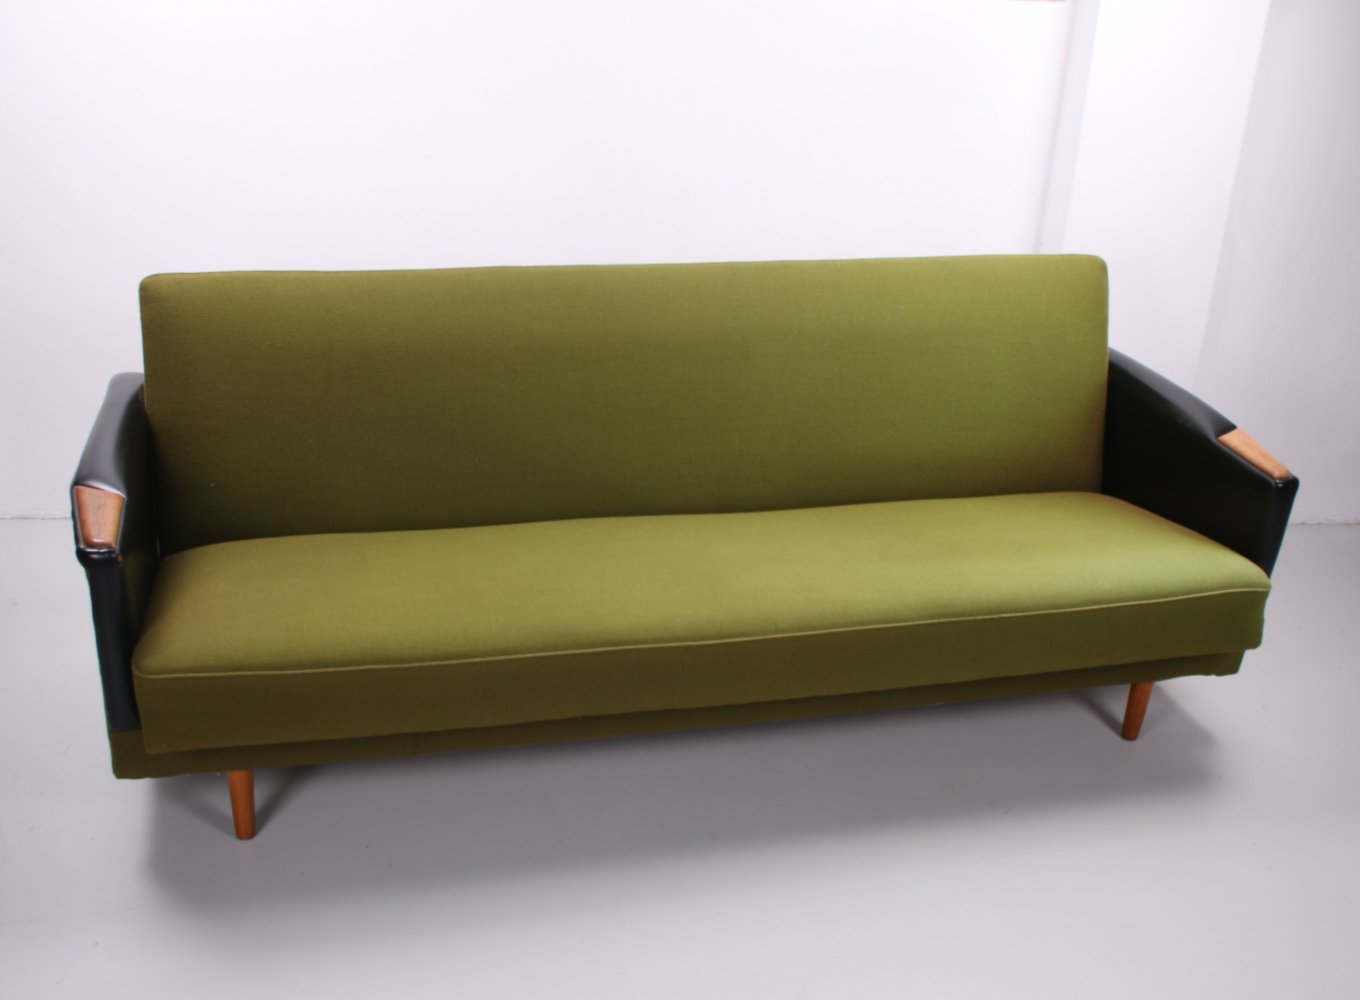 Vintage Scandinavian sofa bed in green, 1960s